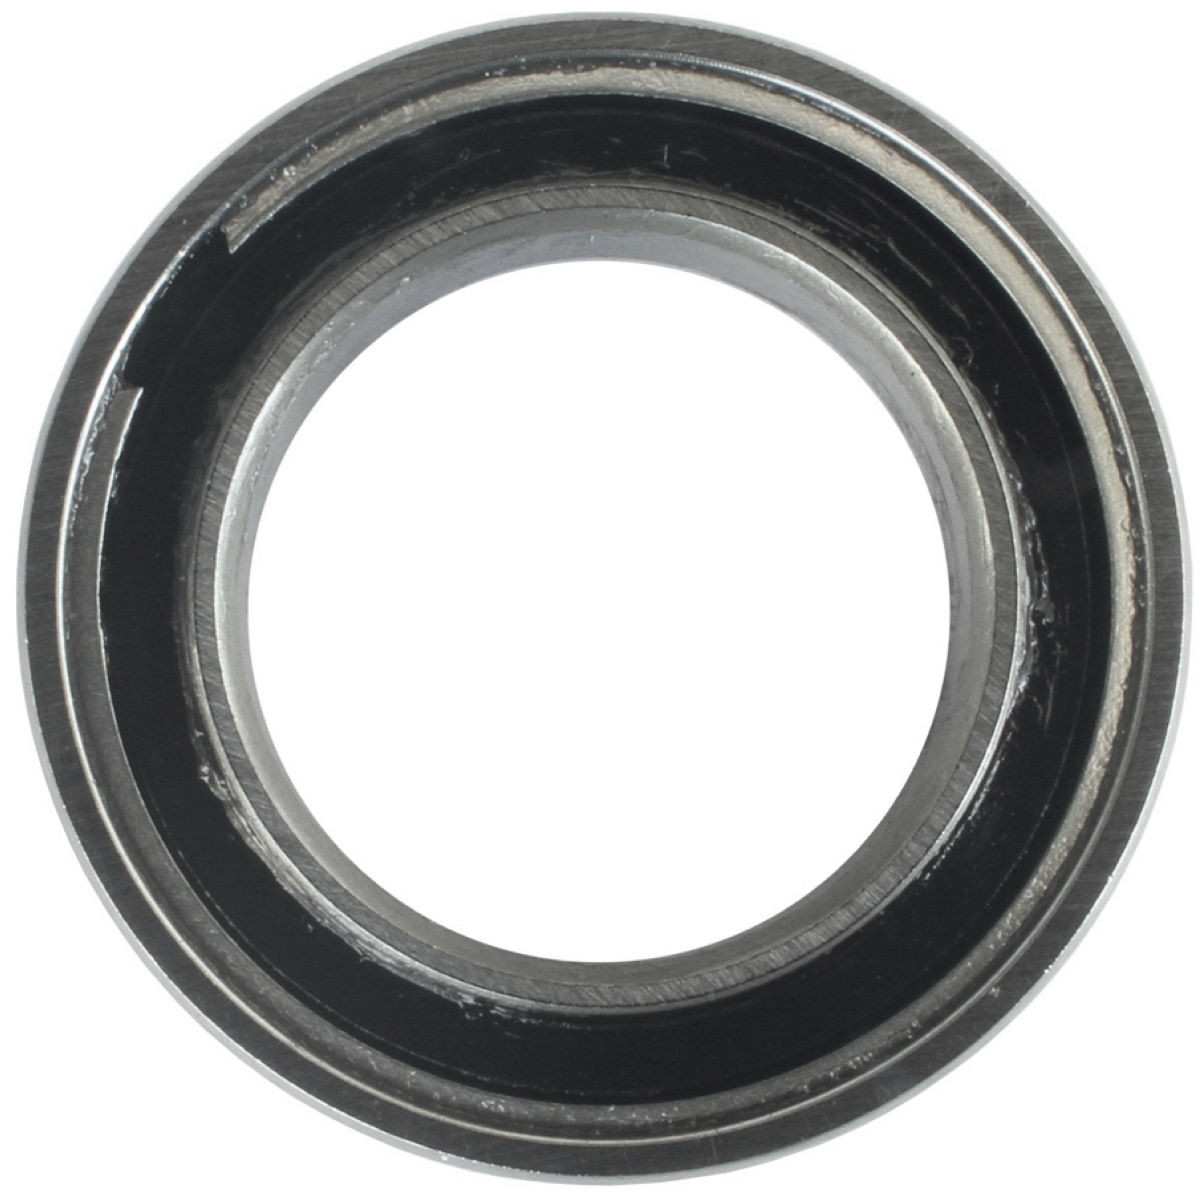 Enduro Bearings Enduro Bearings ABEC5 61802 SRS Bearing   Bottom Bracket Spares